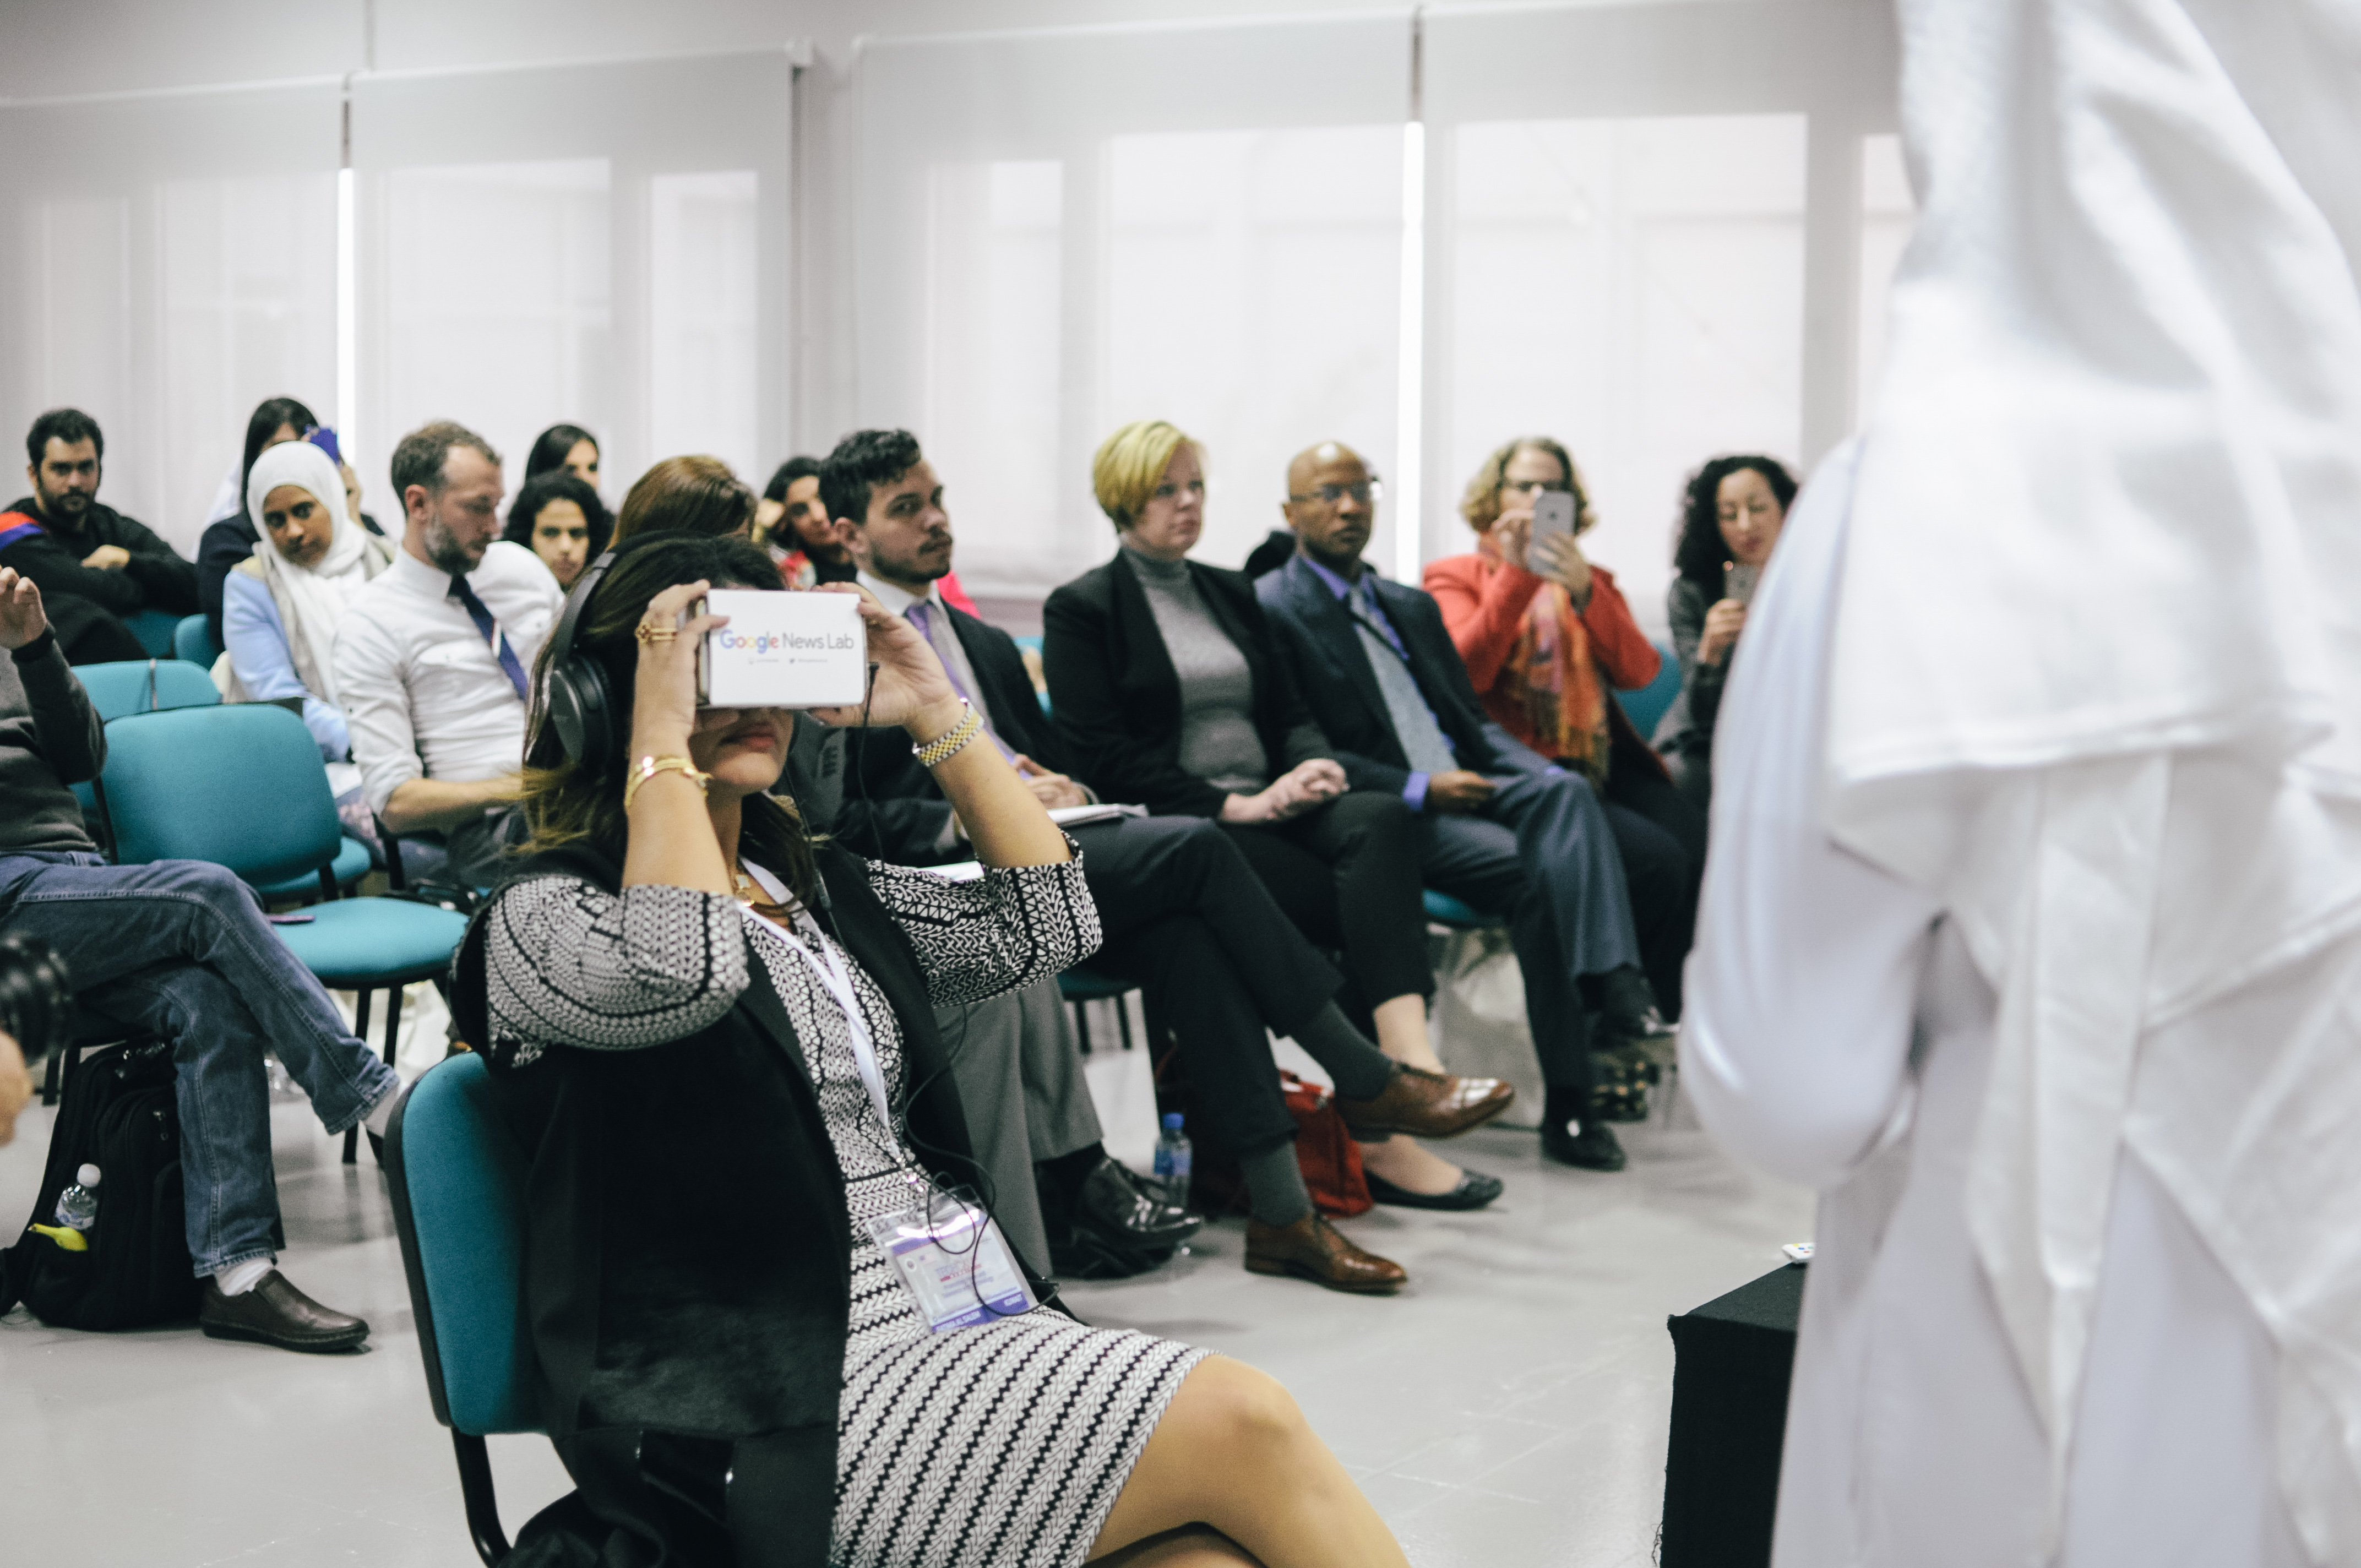 A TechCamp Kuwait trainer participates in a Virtual Reality demonstration meant to invoke empathy for Syrian refugees.